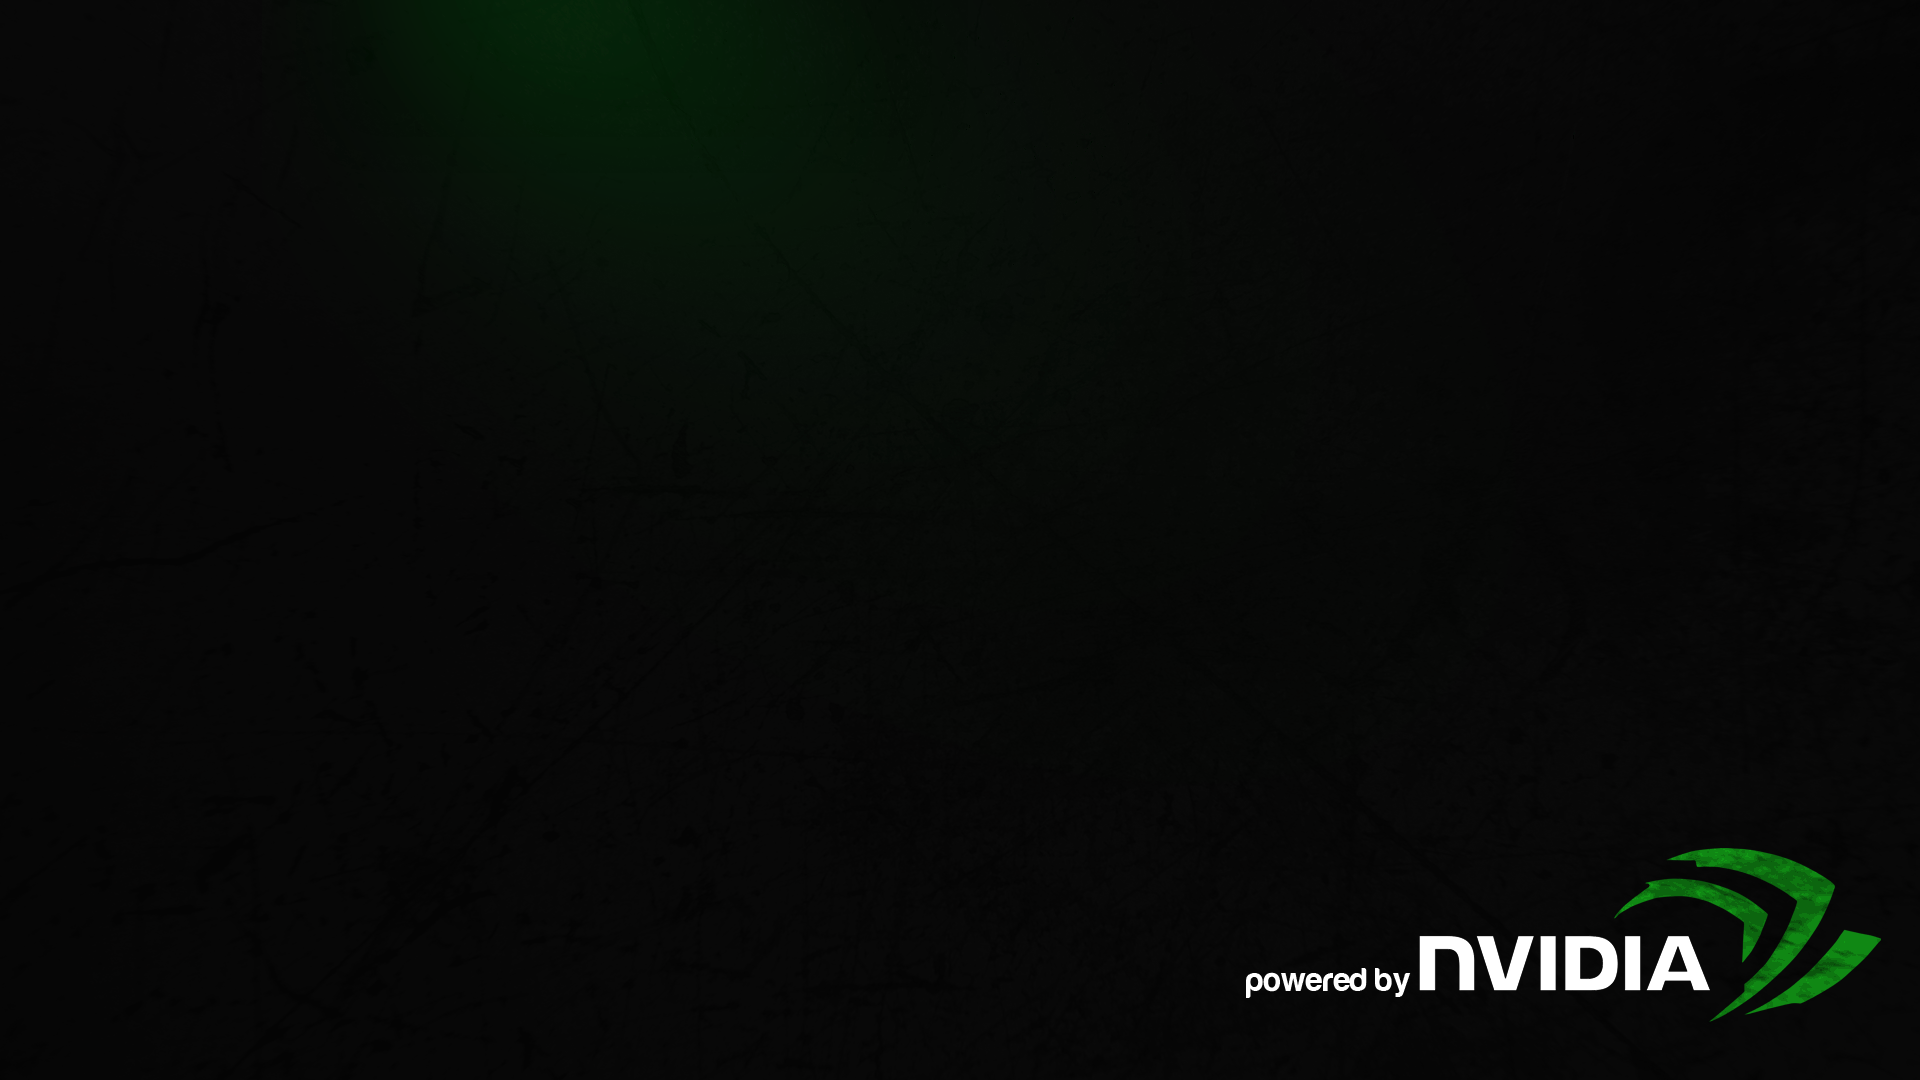 1920x1080 Nvidia Wallpaper Best Of Gaming Resolution Hd 4k Wallpapers